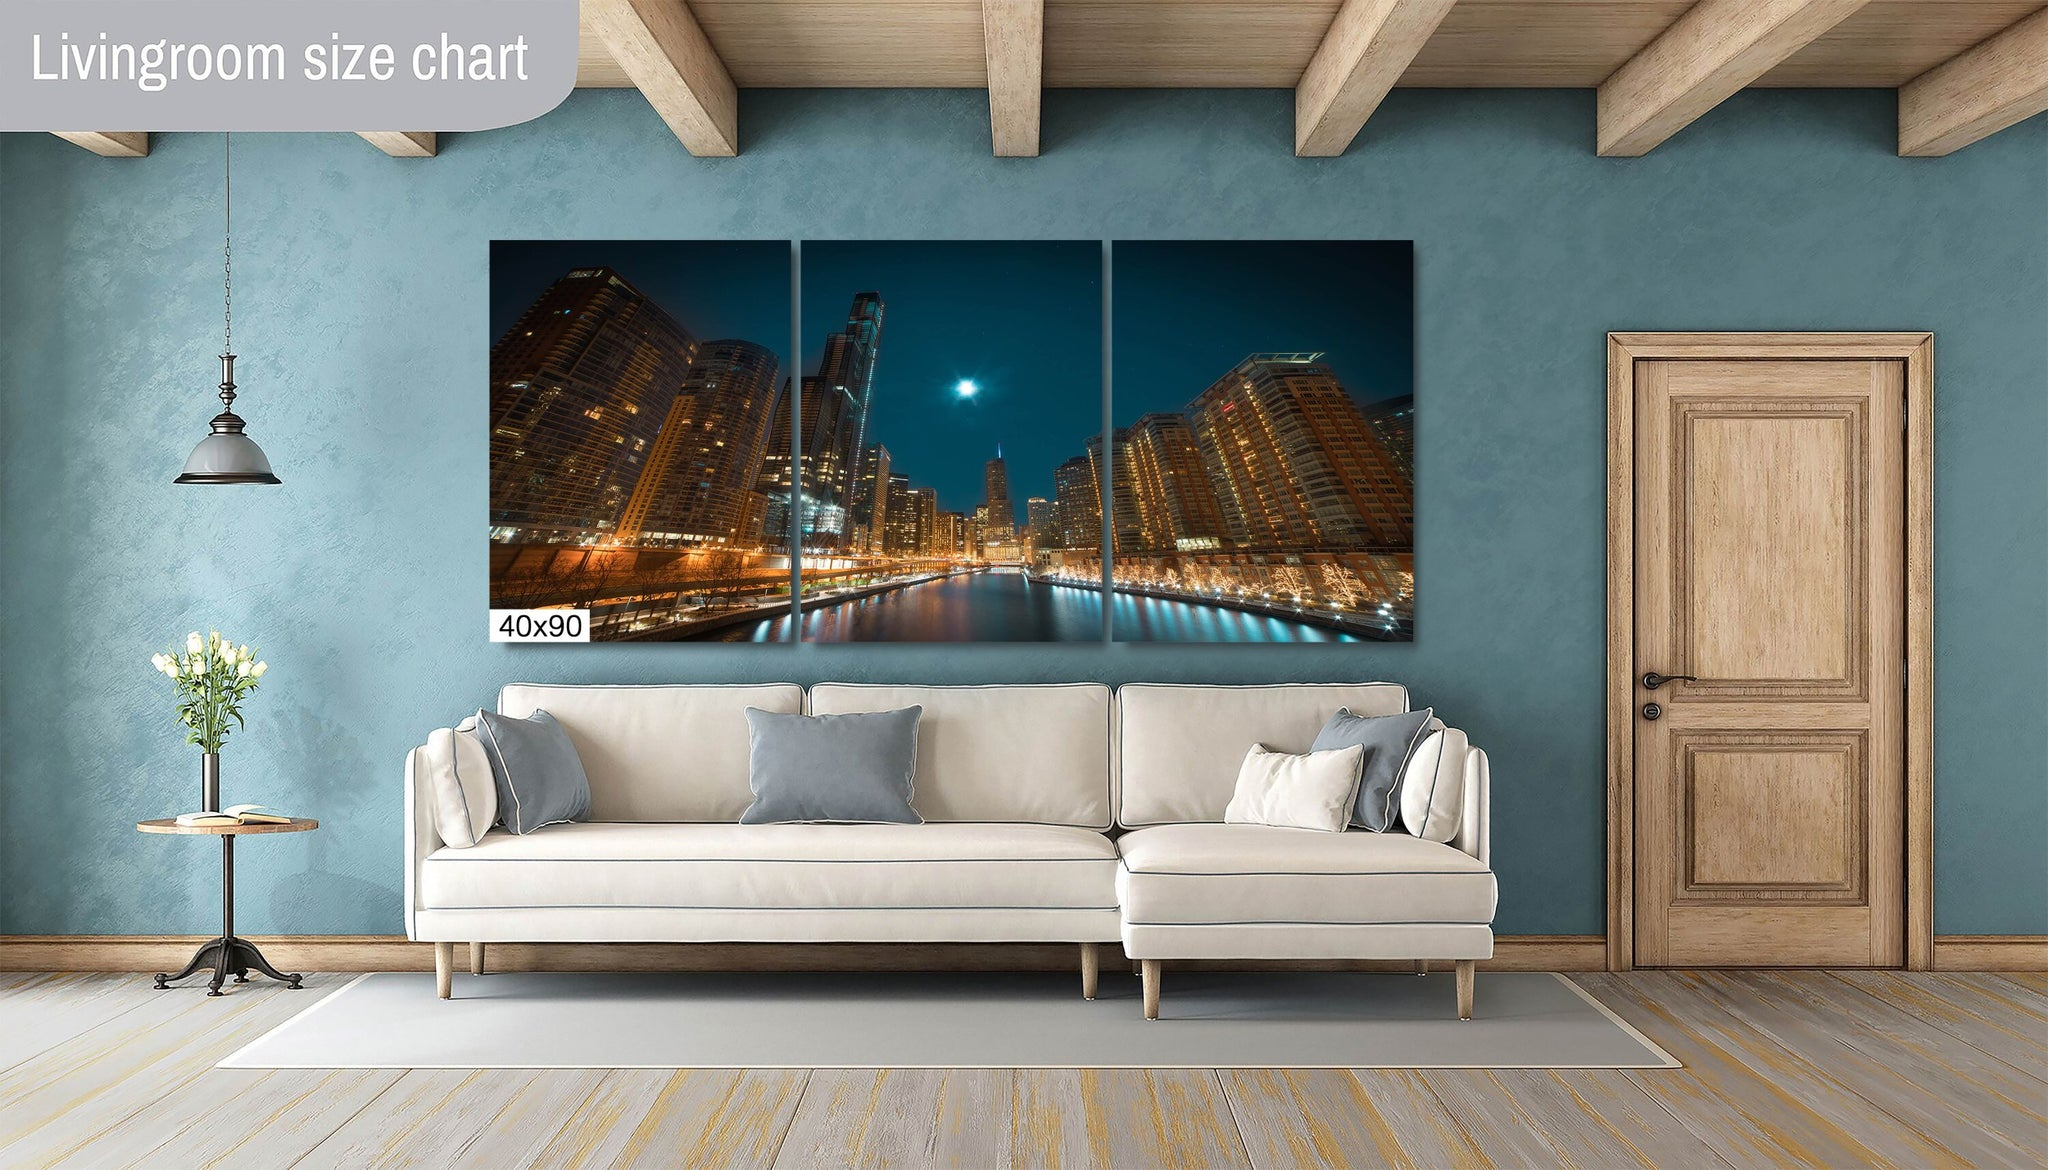 Chicago River Moonlight Photography Metal Print Wall Art Picture Home Decor Poster Landmark Bedroom Livingroom